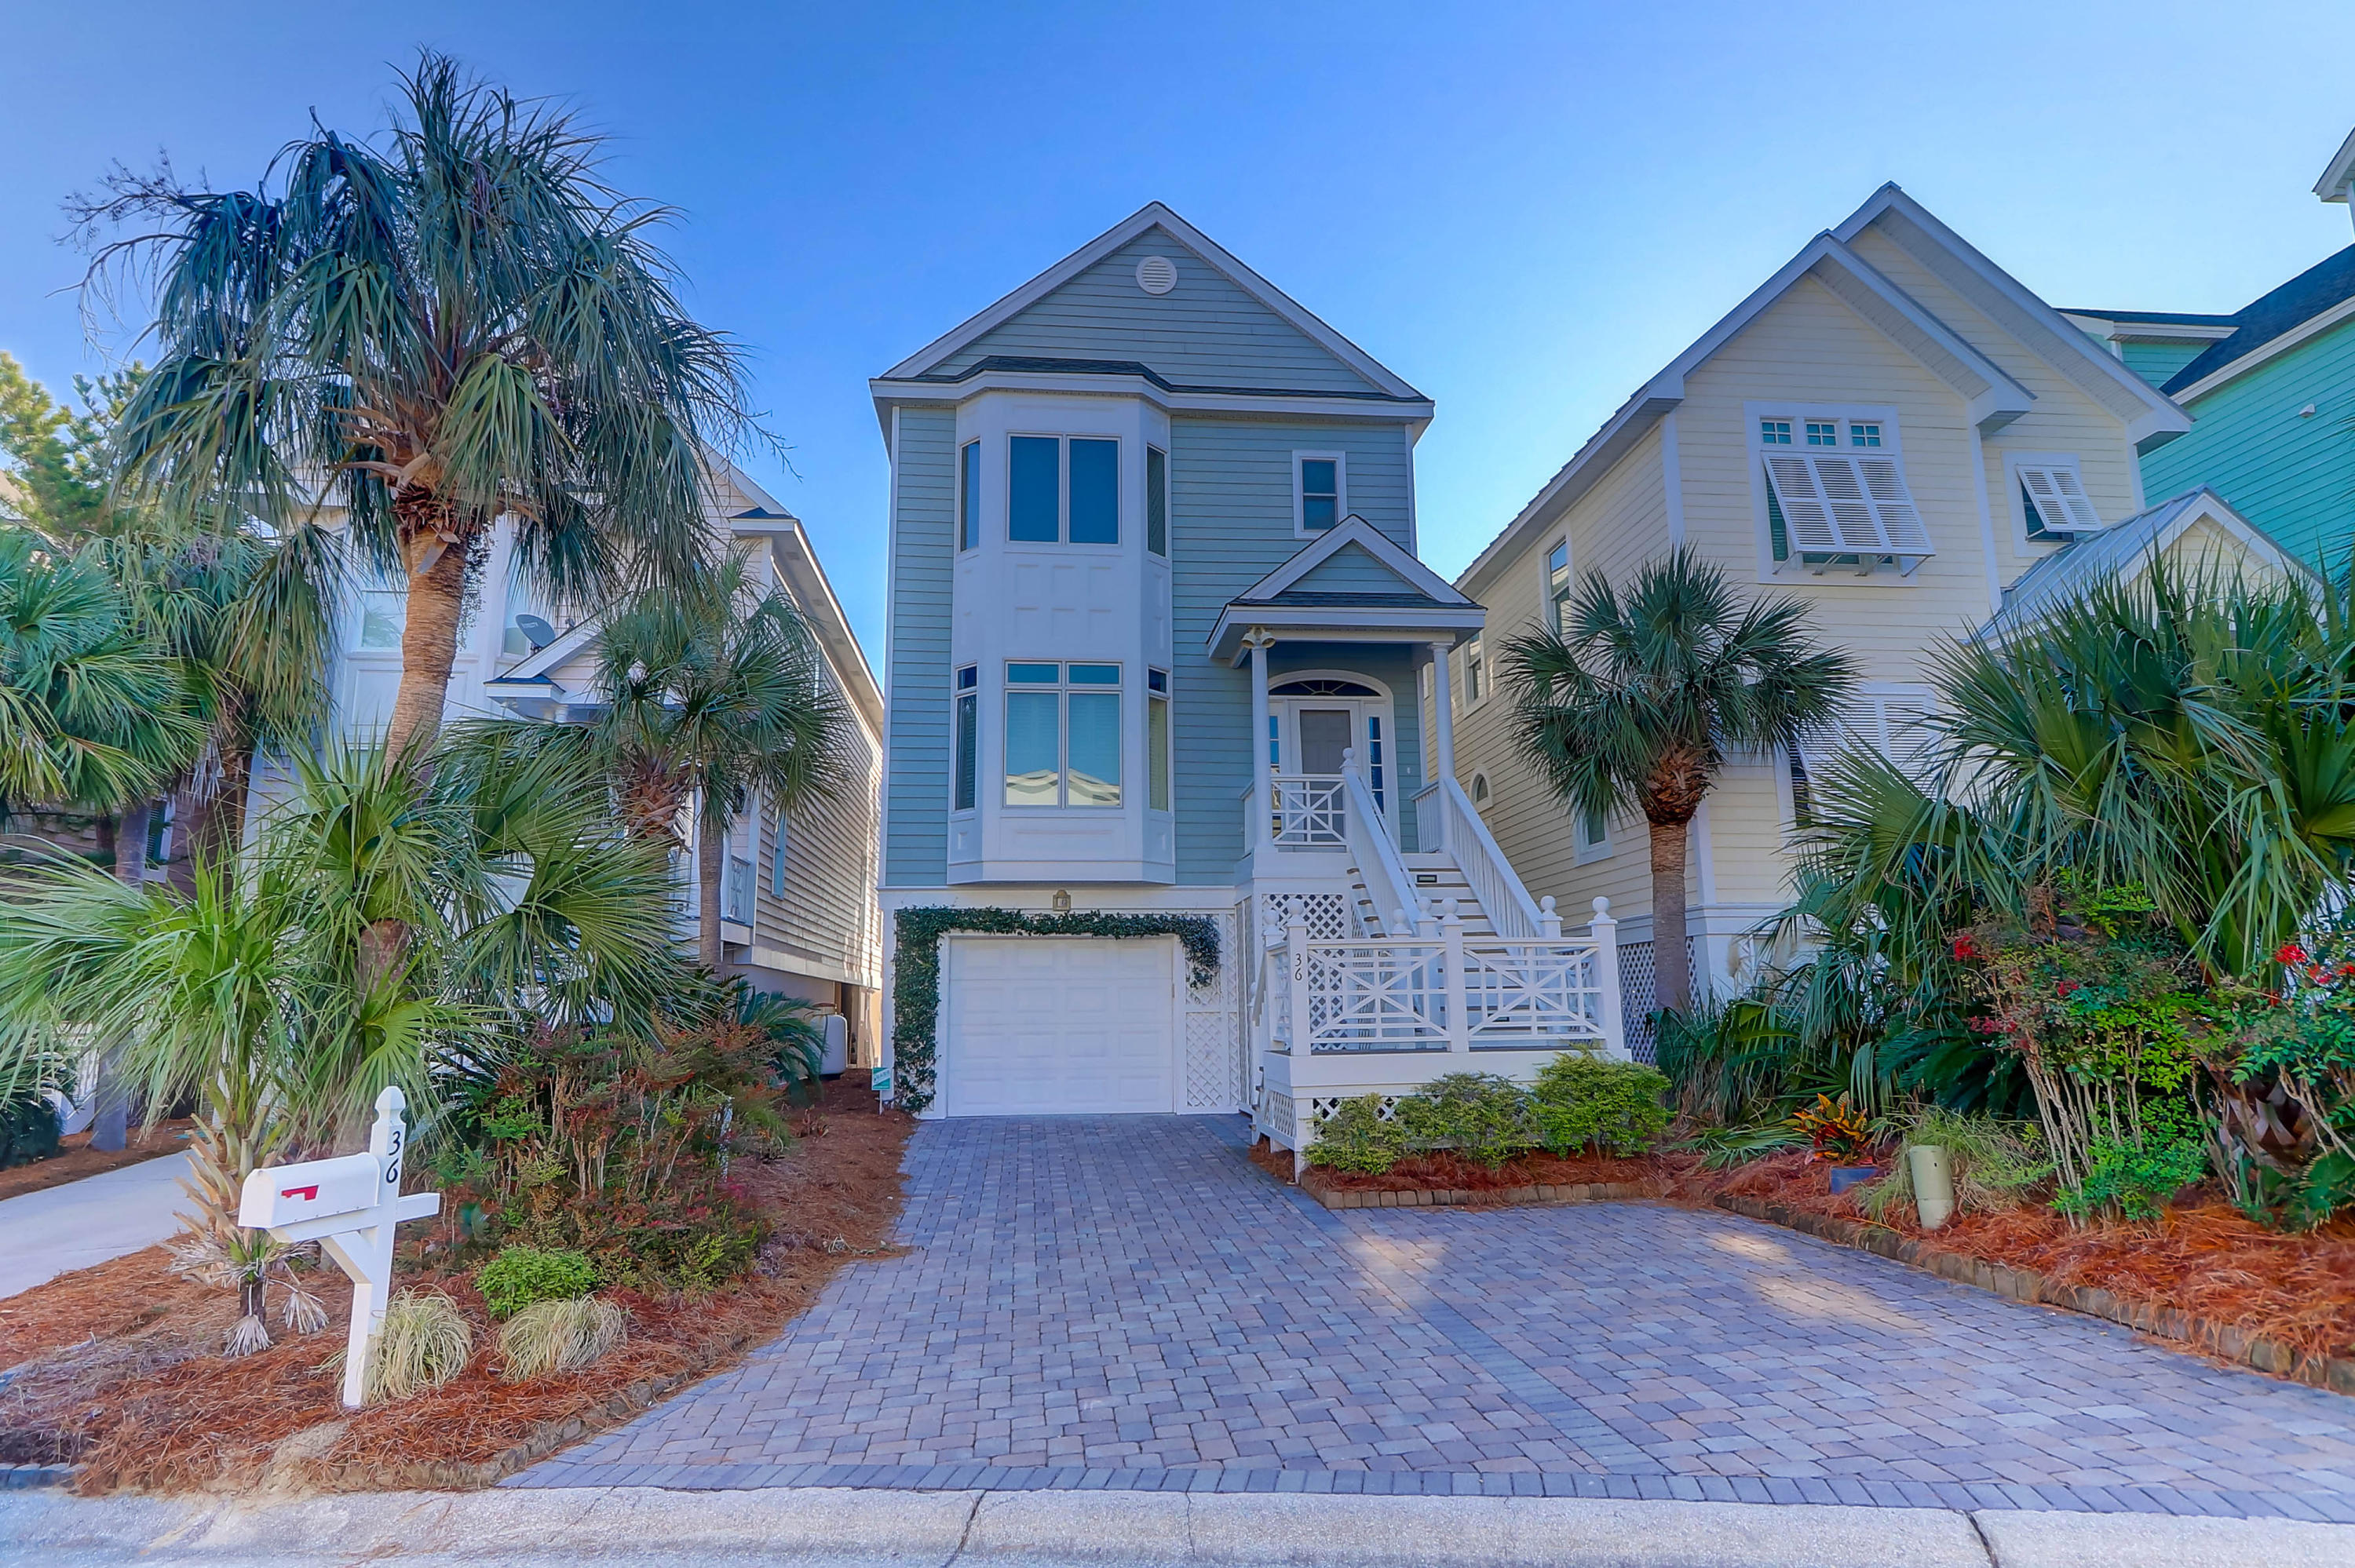 Wild Dunes Homes For Sale - 36 Ocean Point, Isle of Palms, SC - 0